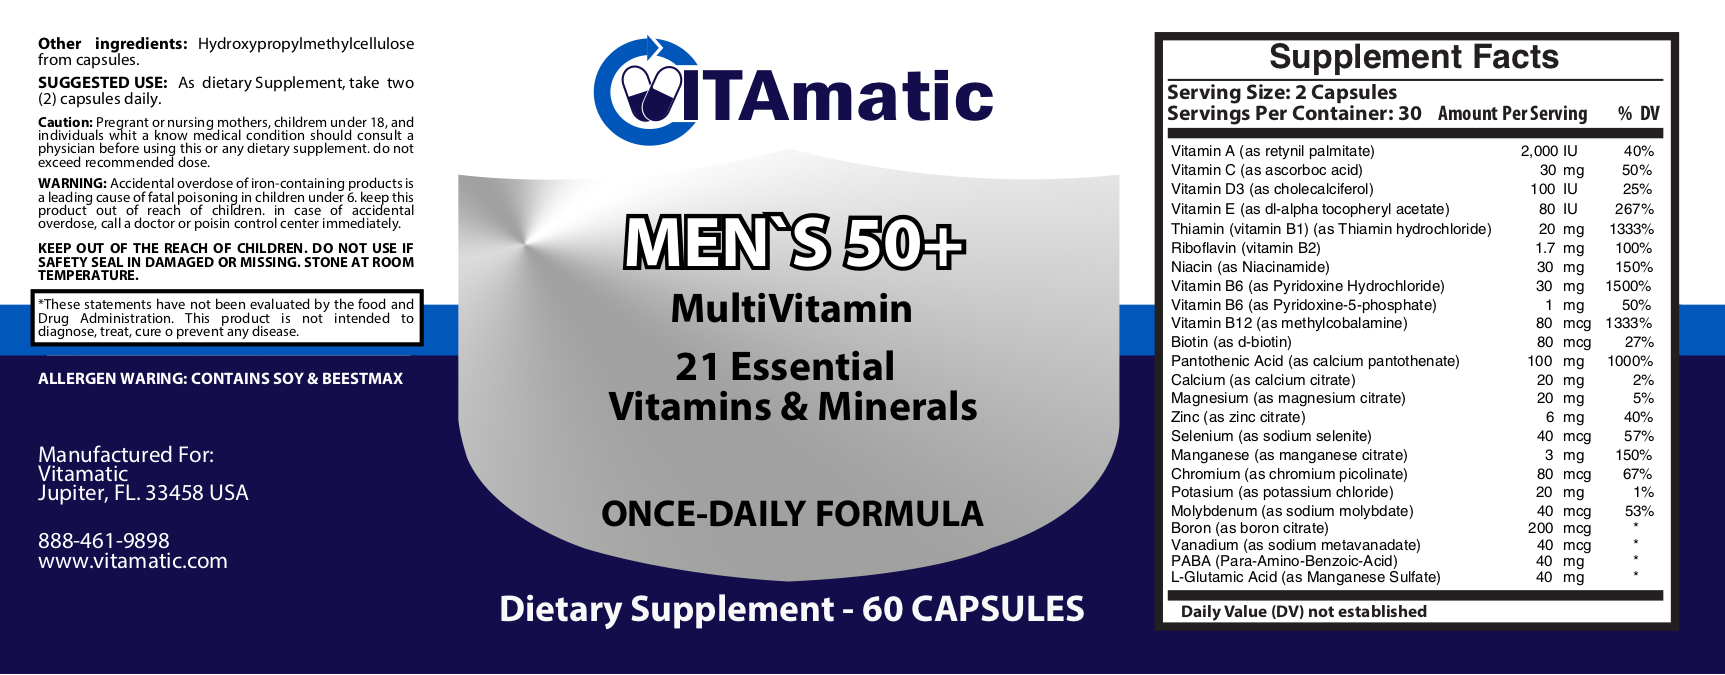 vitamatic mens 50 plus multivitamin